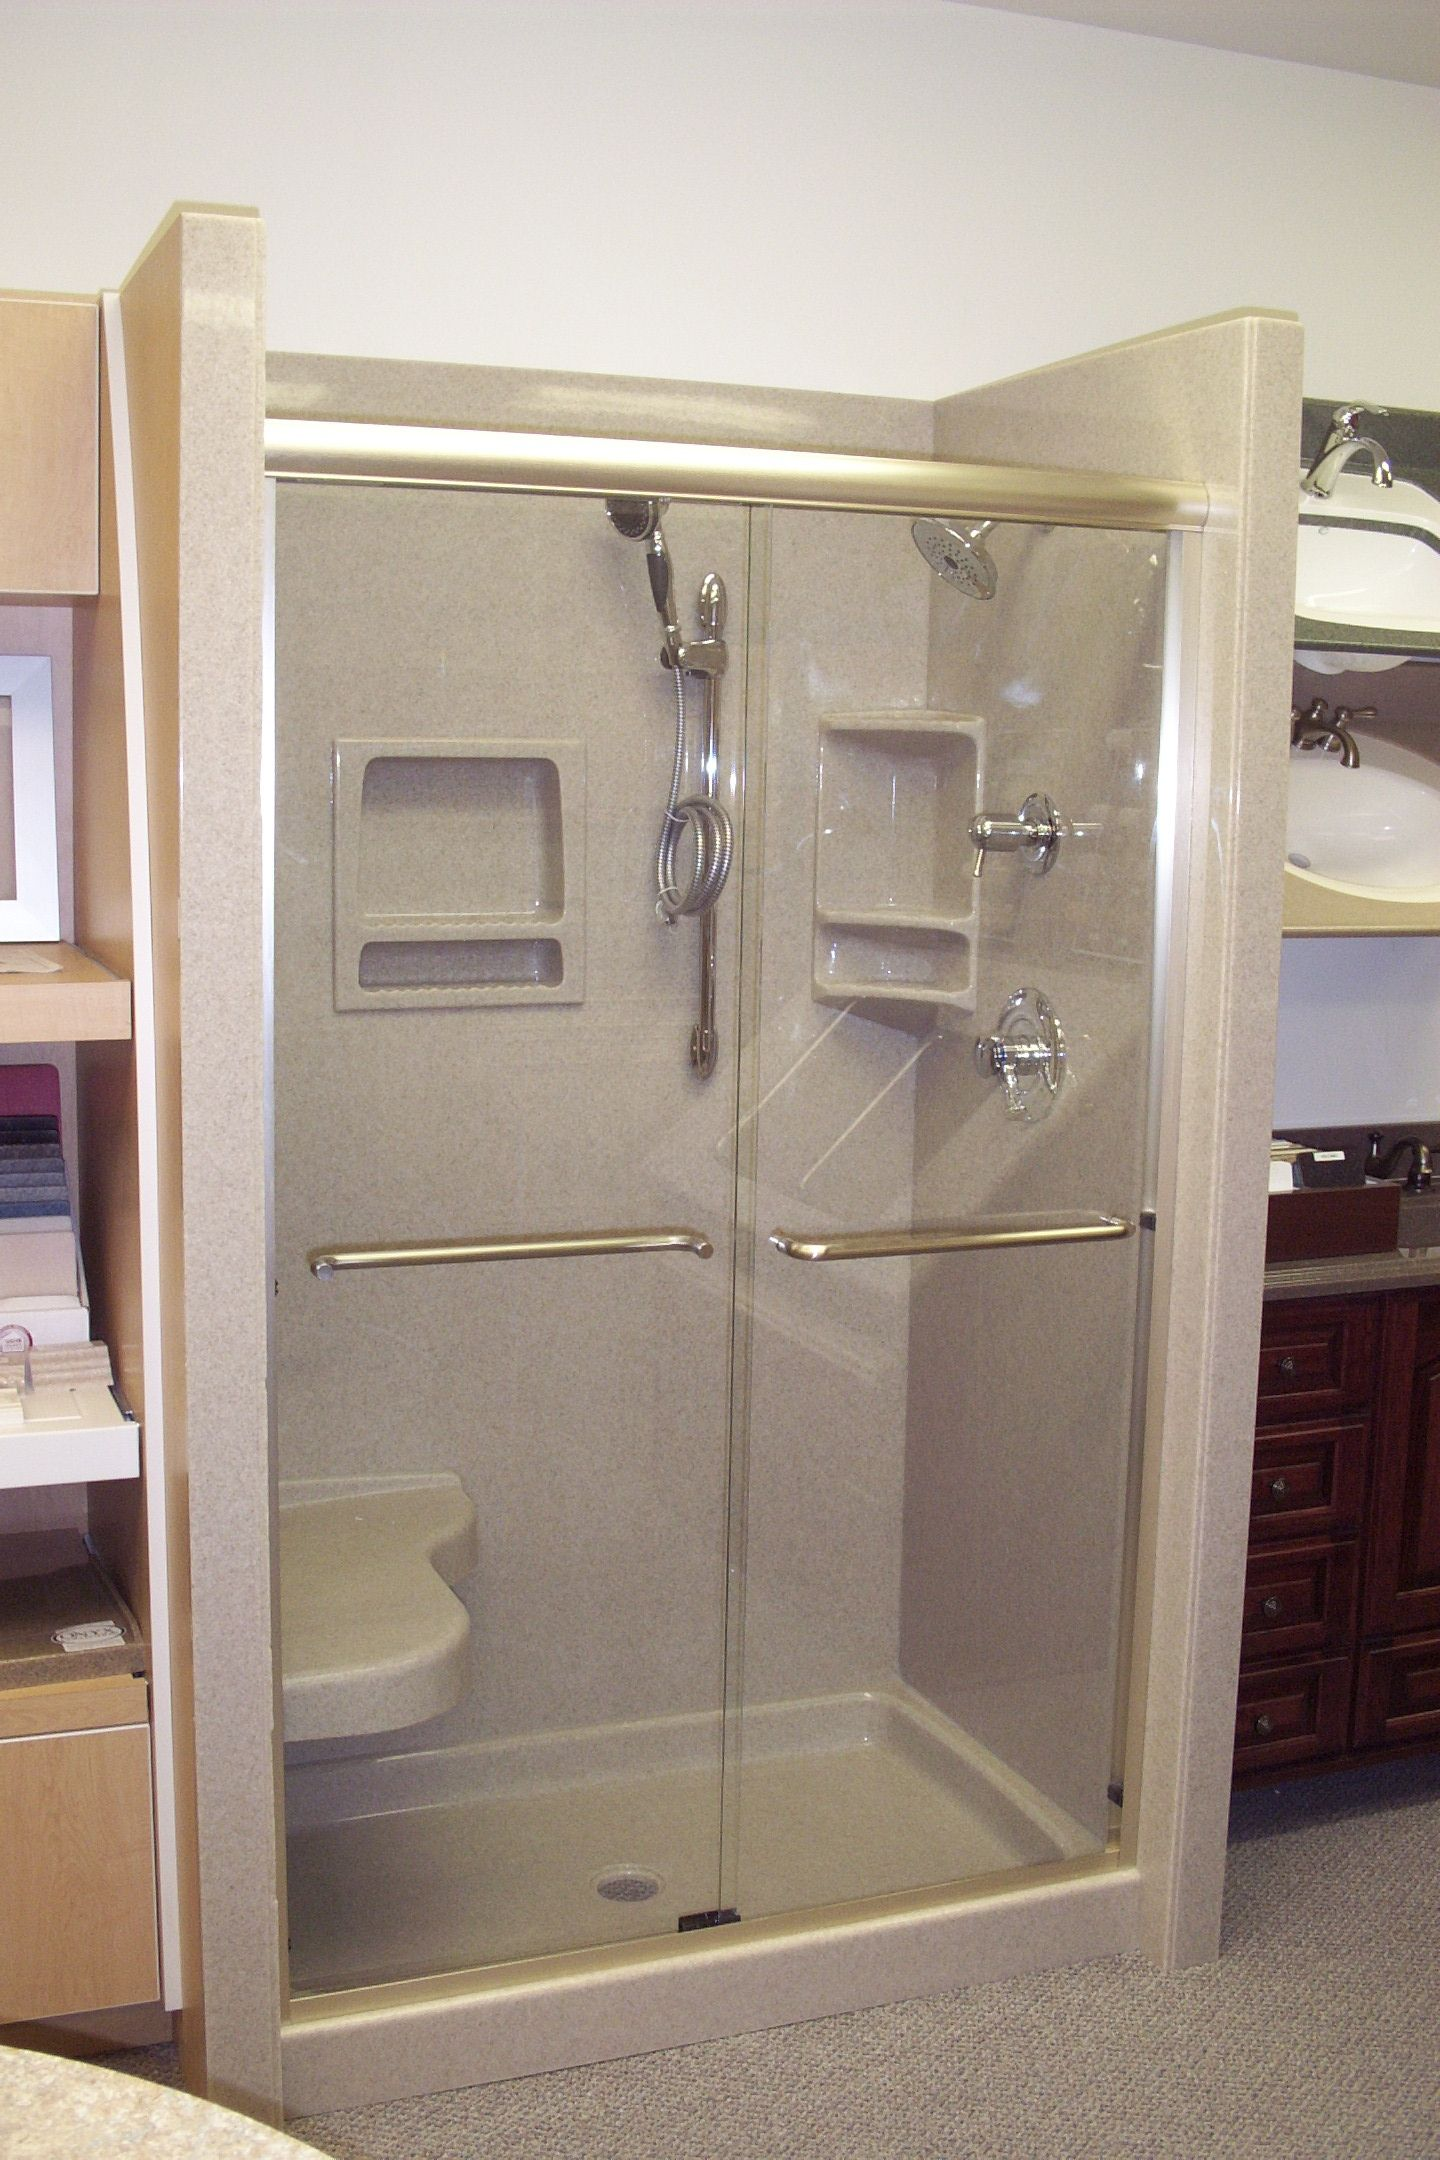 Onyx Shower With Sliding Glass Doors Shower Caddies Shower Head Bar Add As As Many Of The Dozen Shower Acce Onyx Shower Bathroom Makeover Shower Accessories